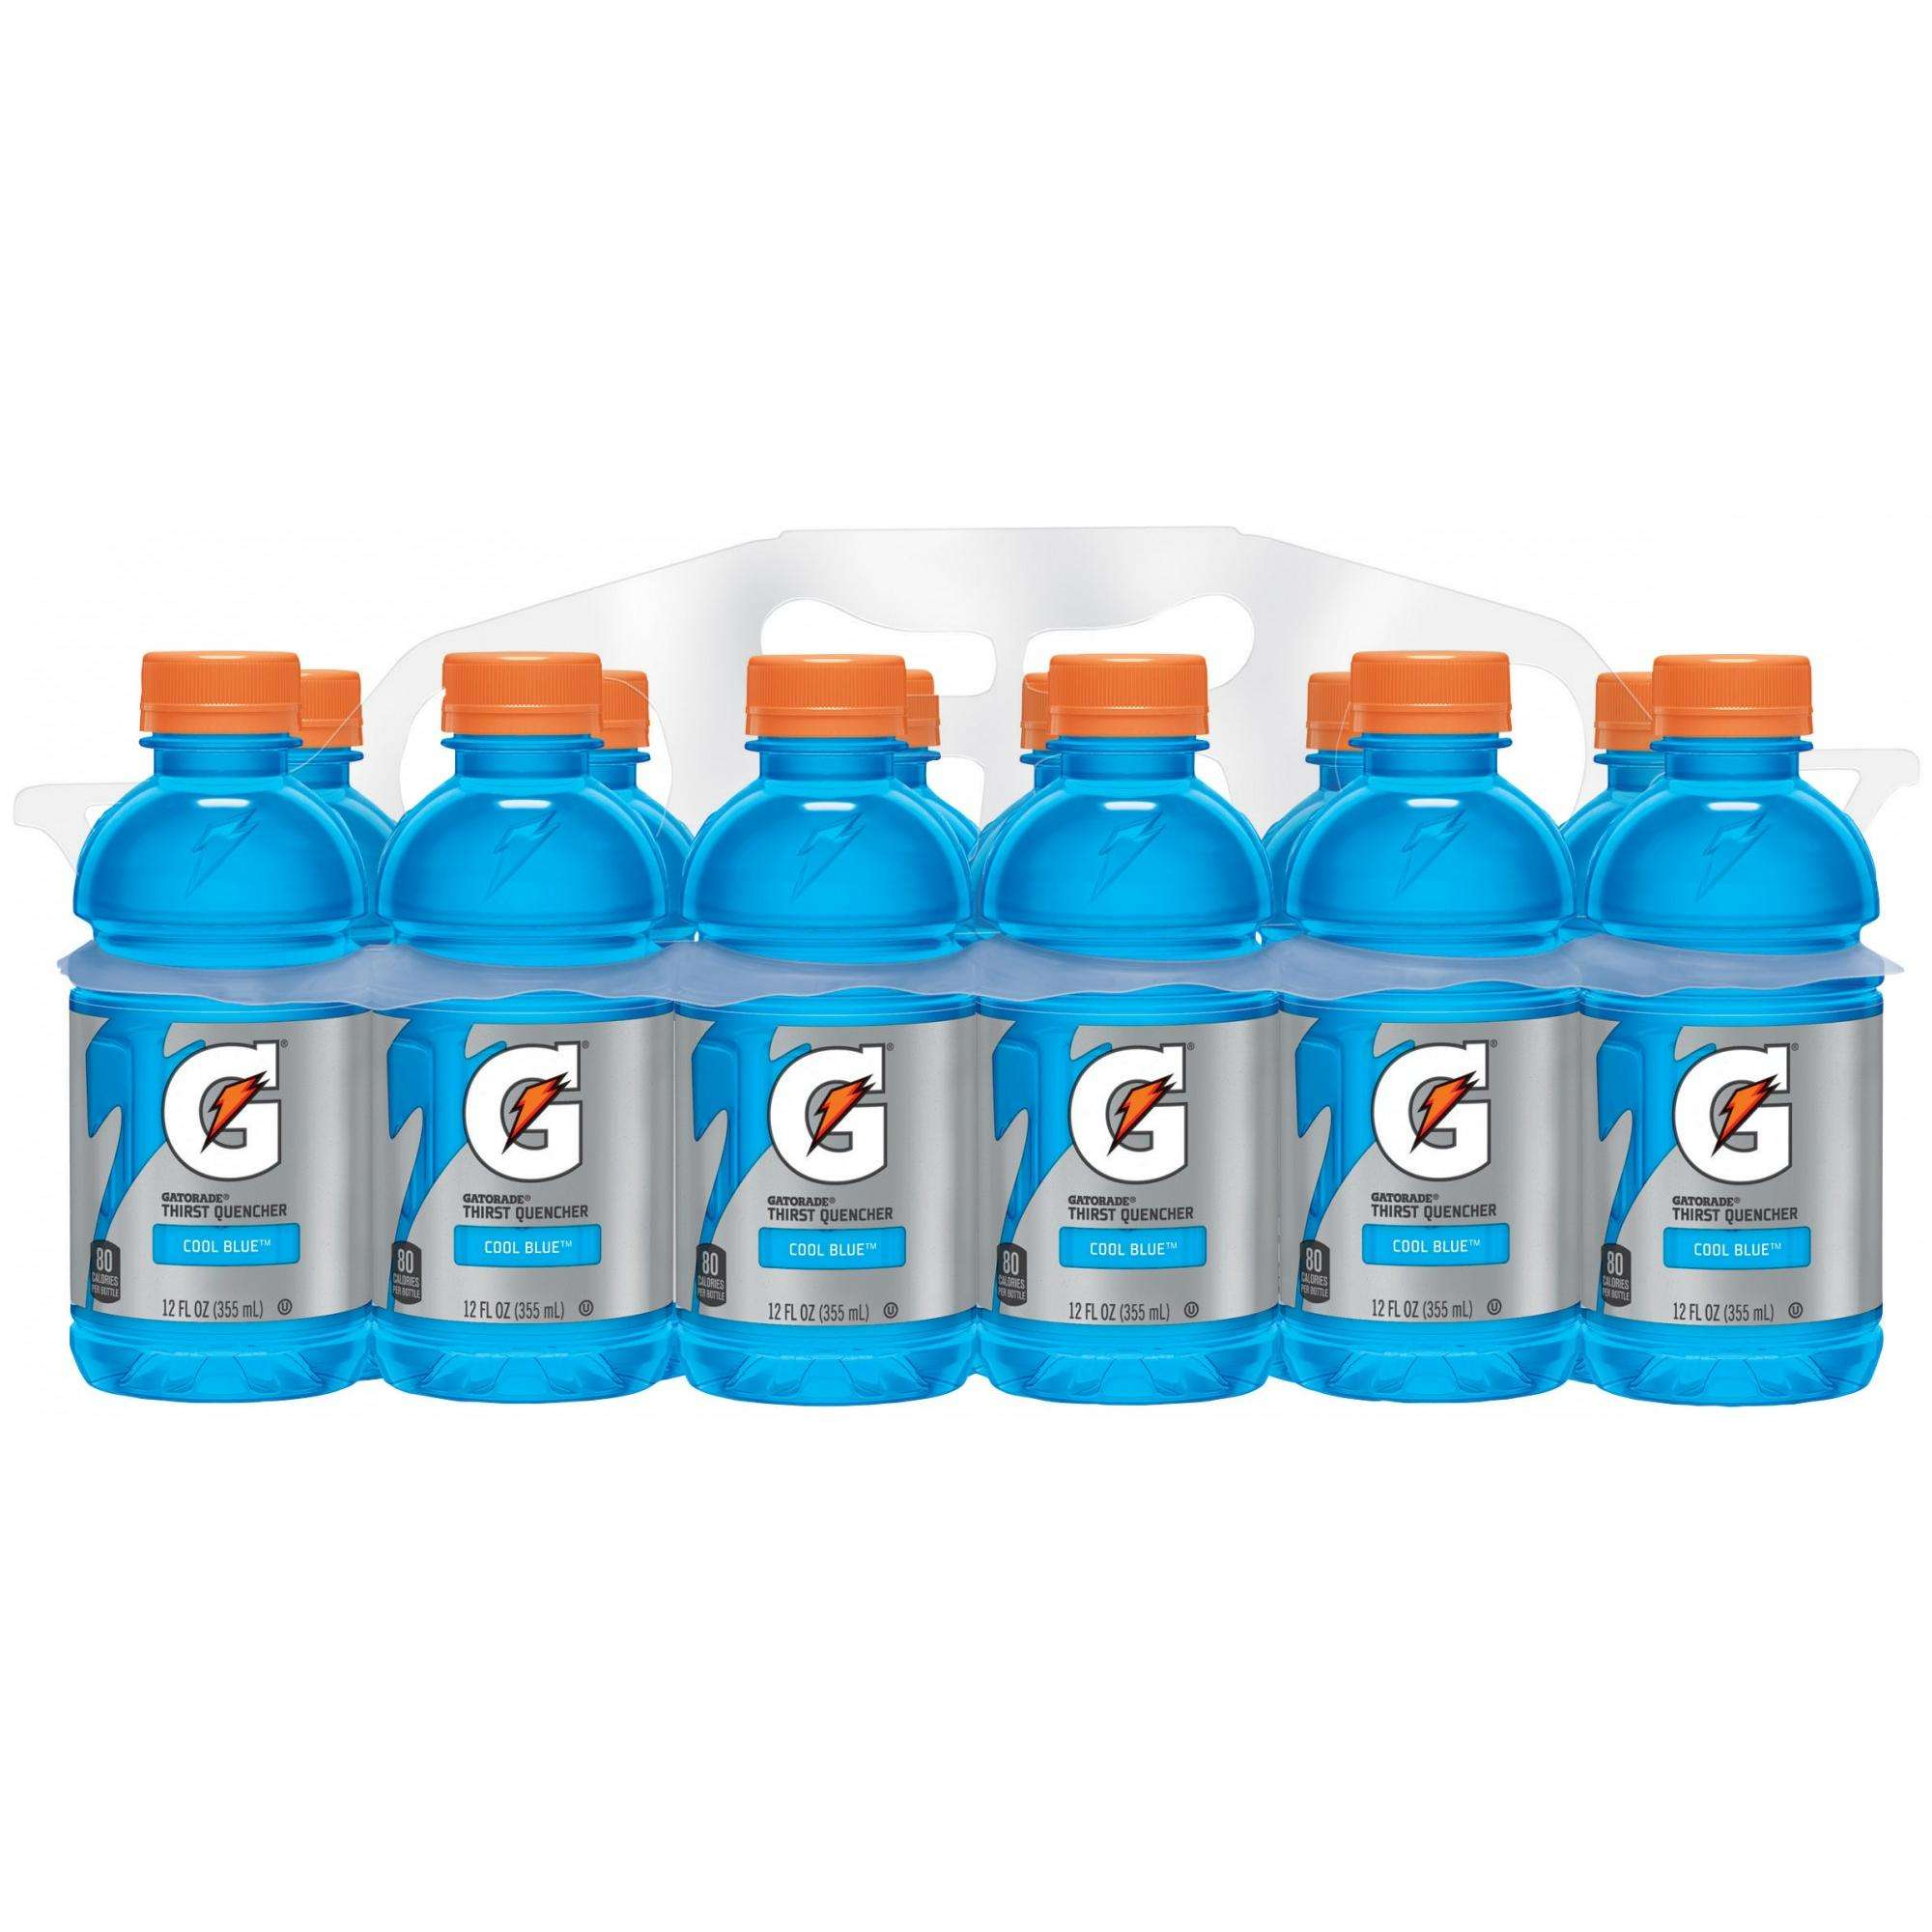 Cool Blue Paint Gatorade Thirst Quencher Cool Blue Drink 12 Fl Oz 12 Count